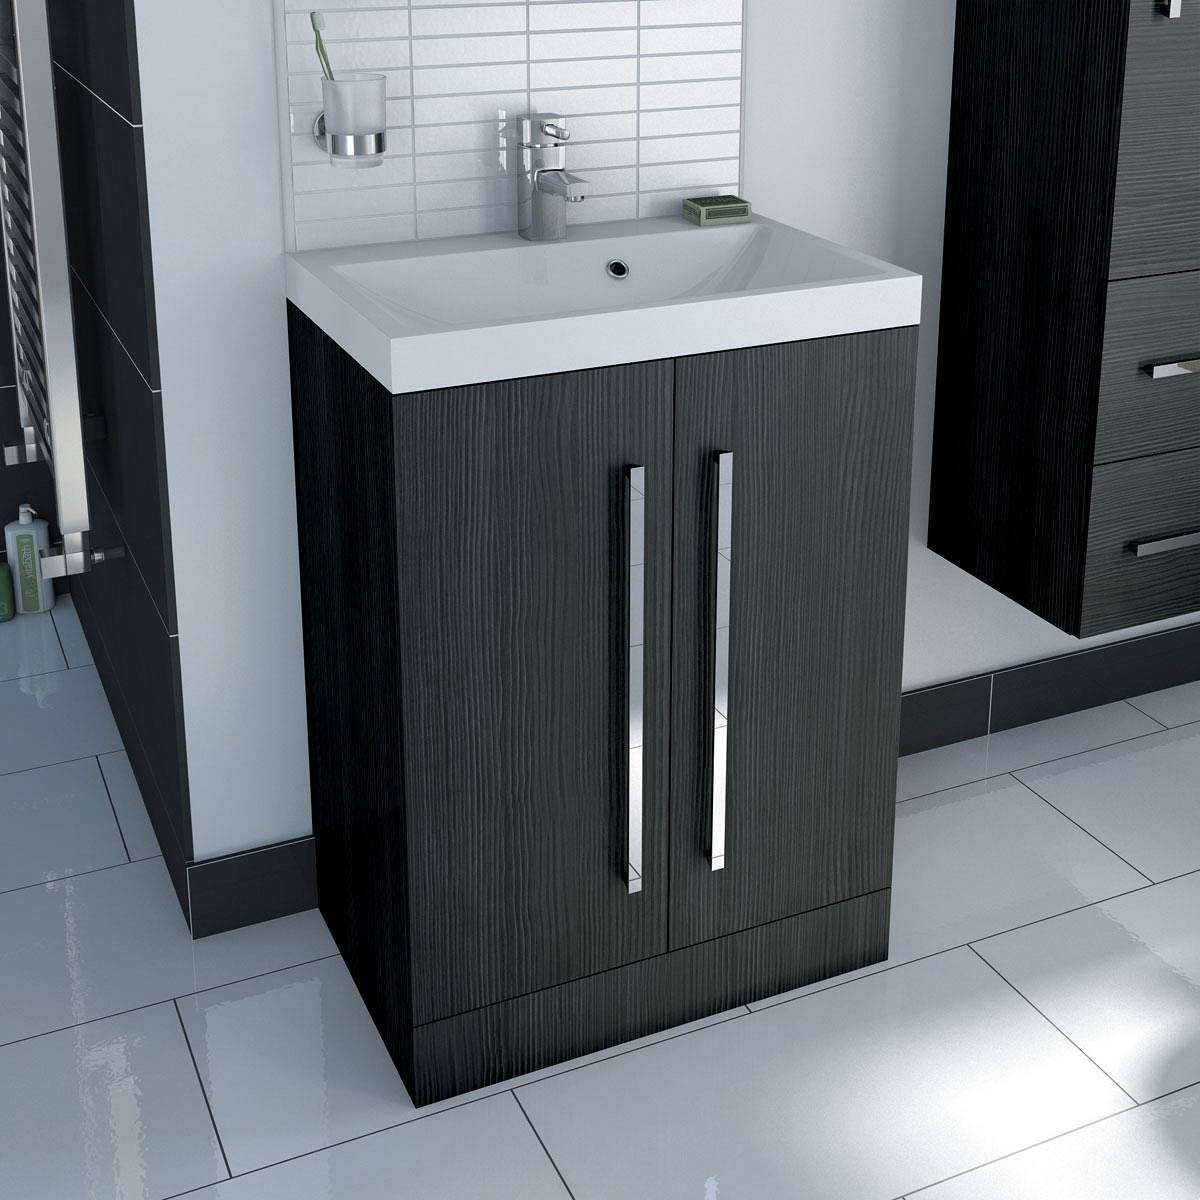 Drift essen 2 door floor mounted unit & basin